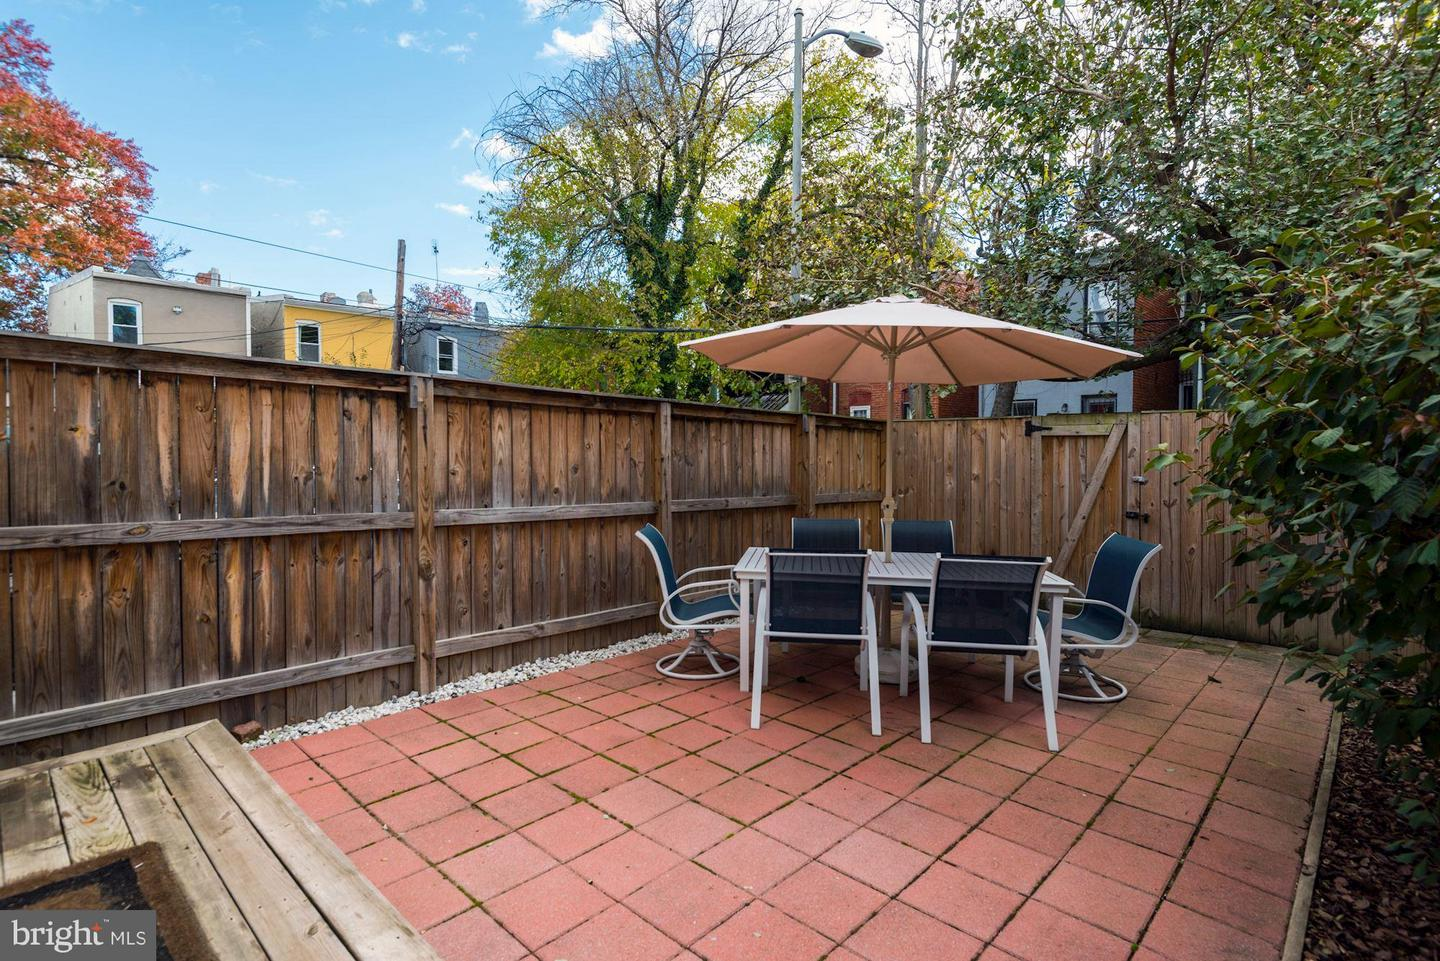 Additional photo for property listing at 316 Elm St NW 316 Elm St NW Washington, District Of Columbia 20001 United States